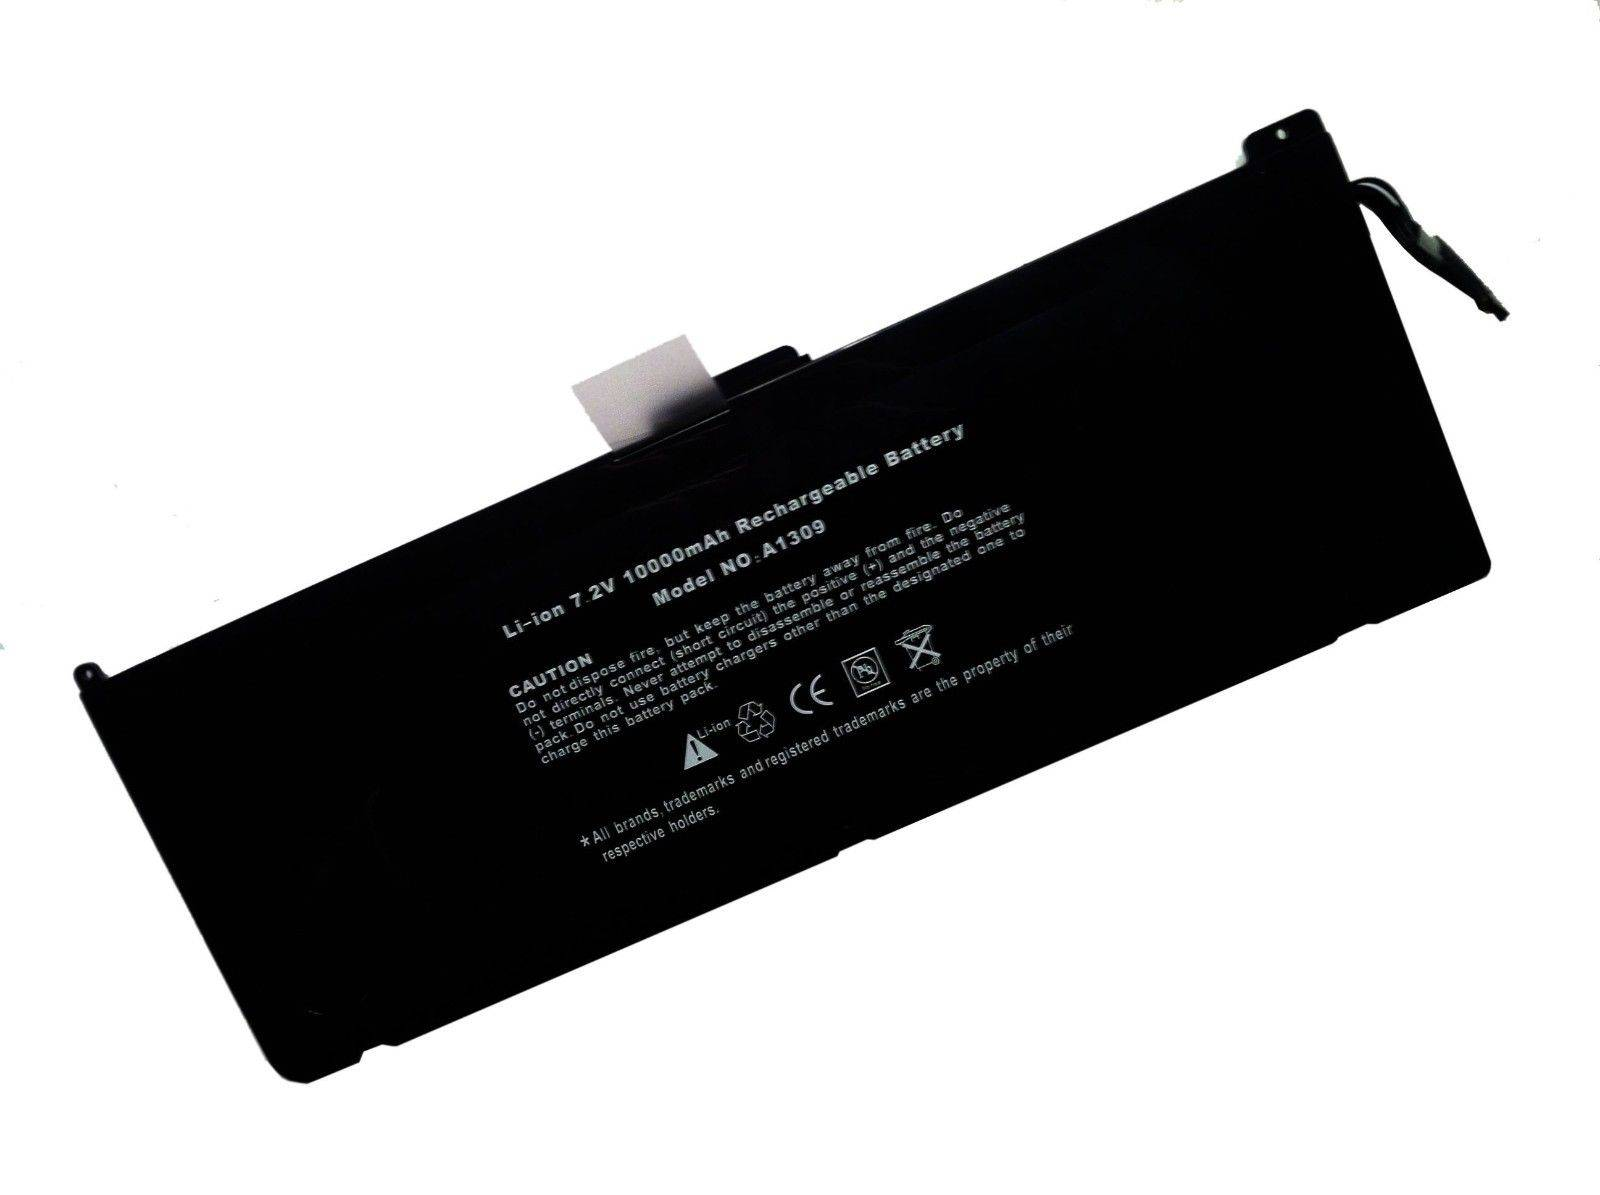 NEW Battery 661-5037-A 2009 2010 for Macbook Pro 17 A1297 Laptop A1309 laptop battery